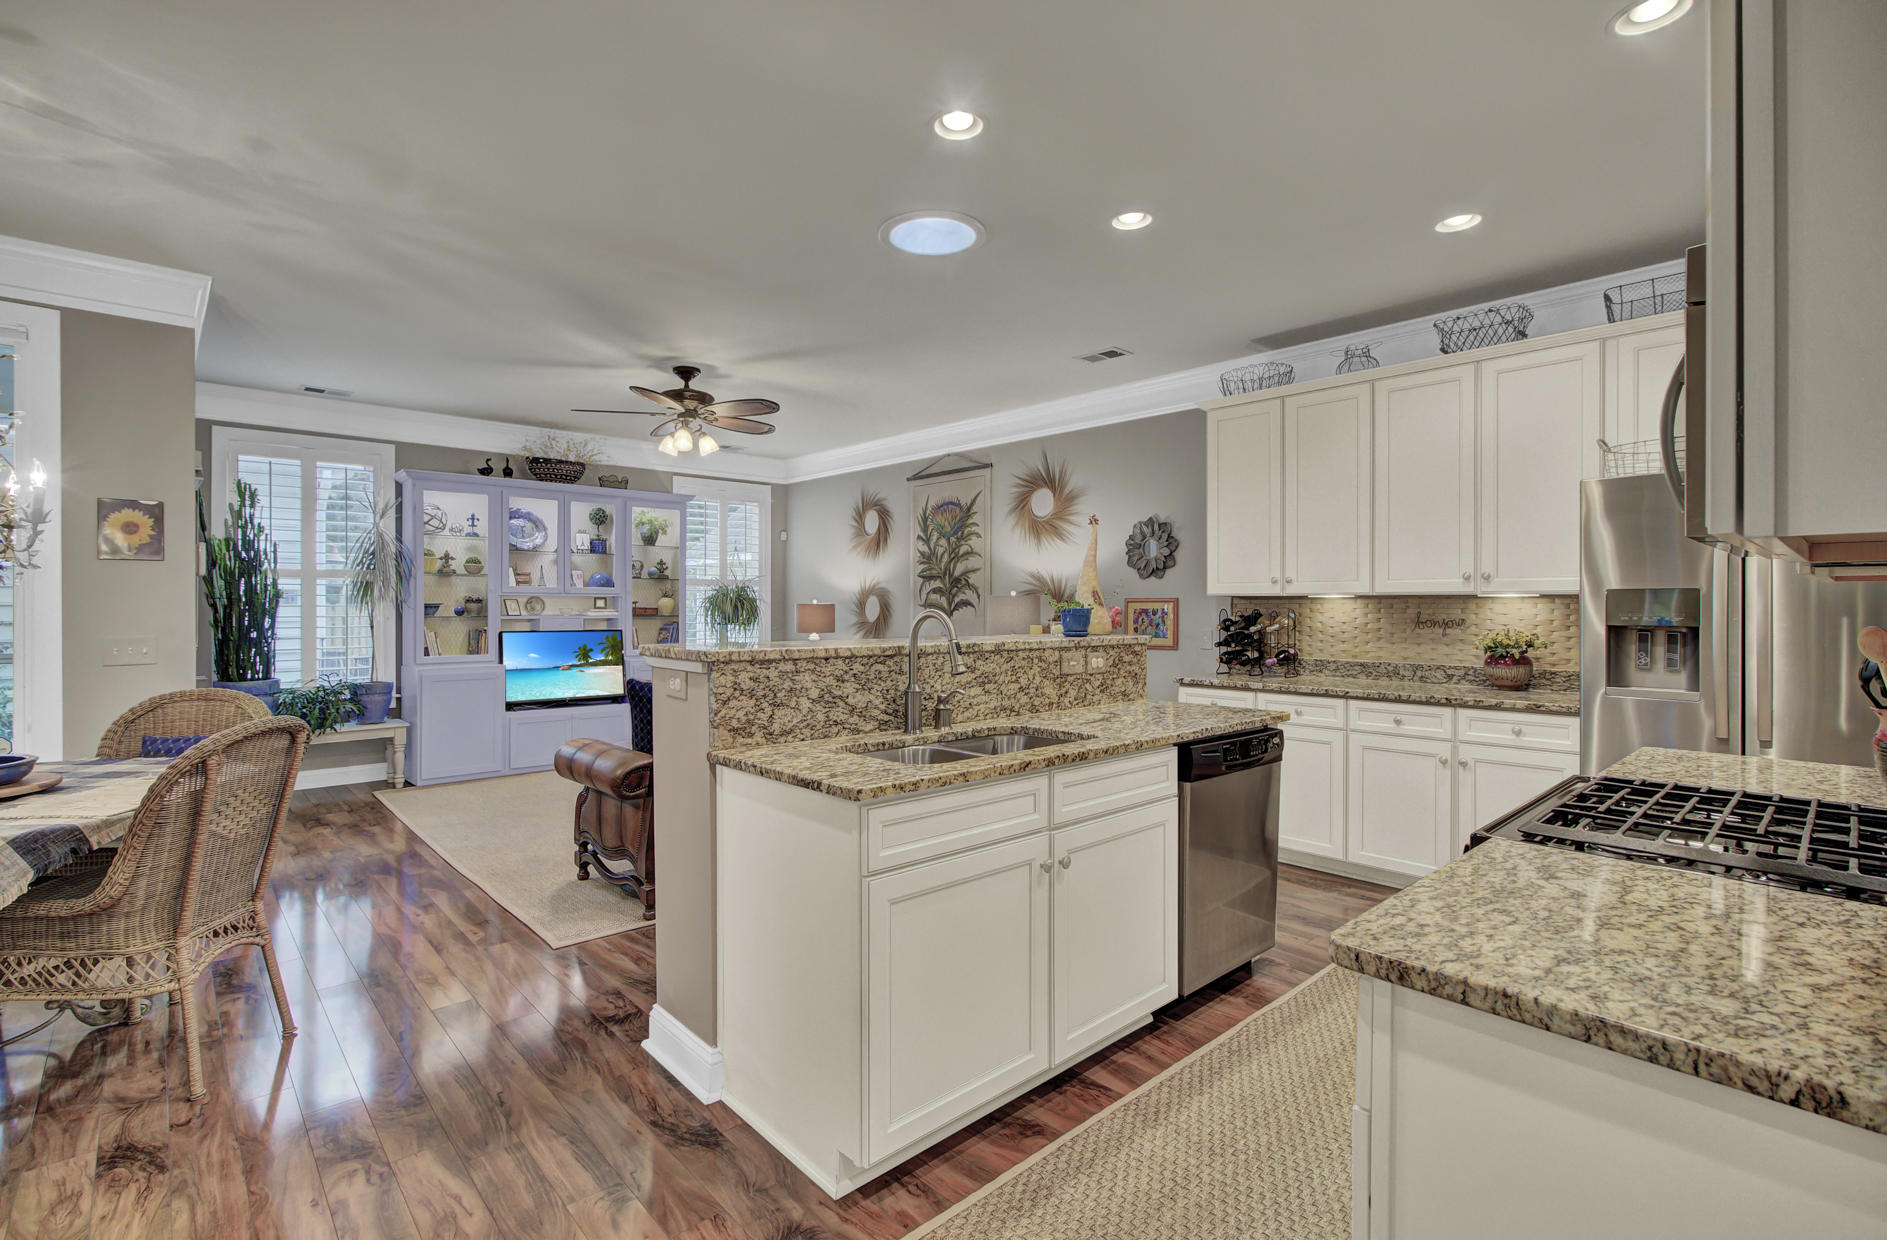 Boltons Landing Homes For Sale - 3034 Scuba, Charleston, SC - 20